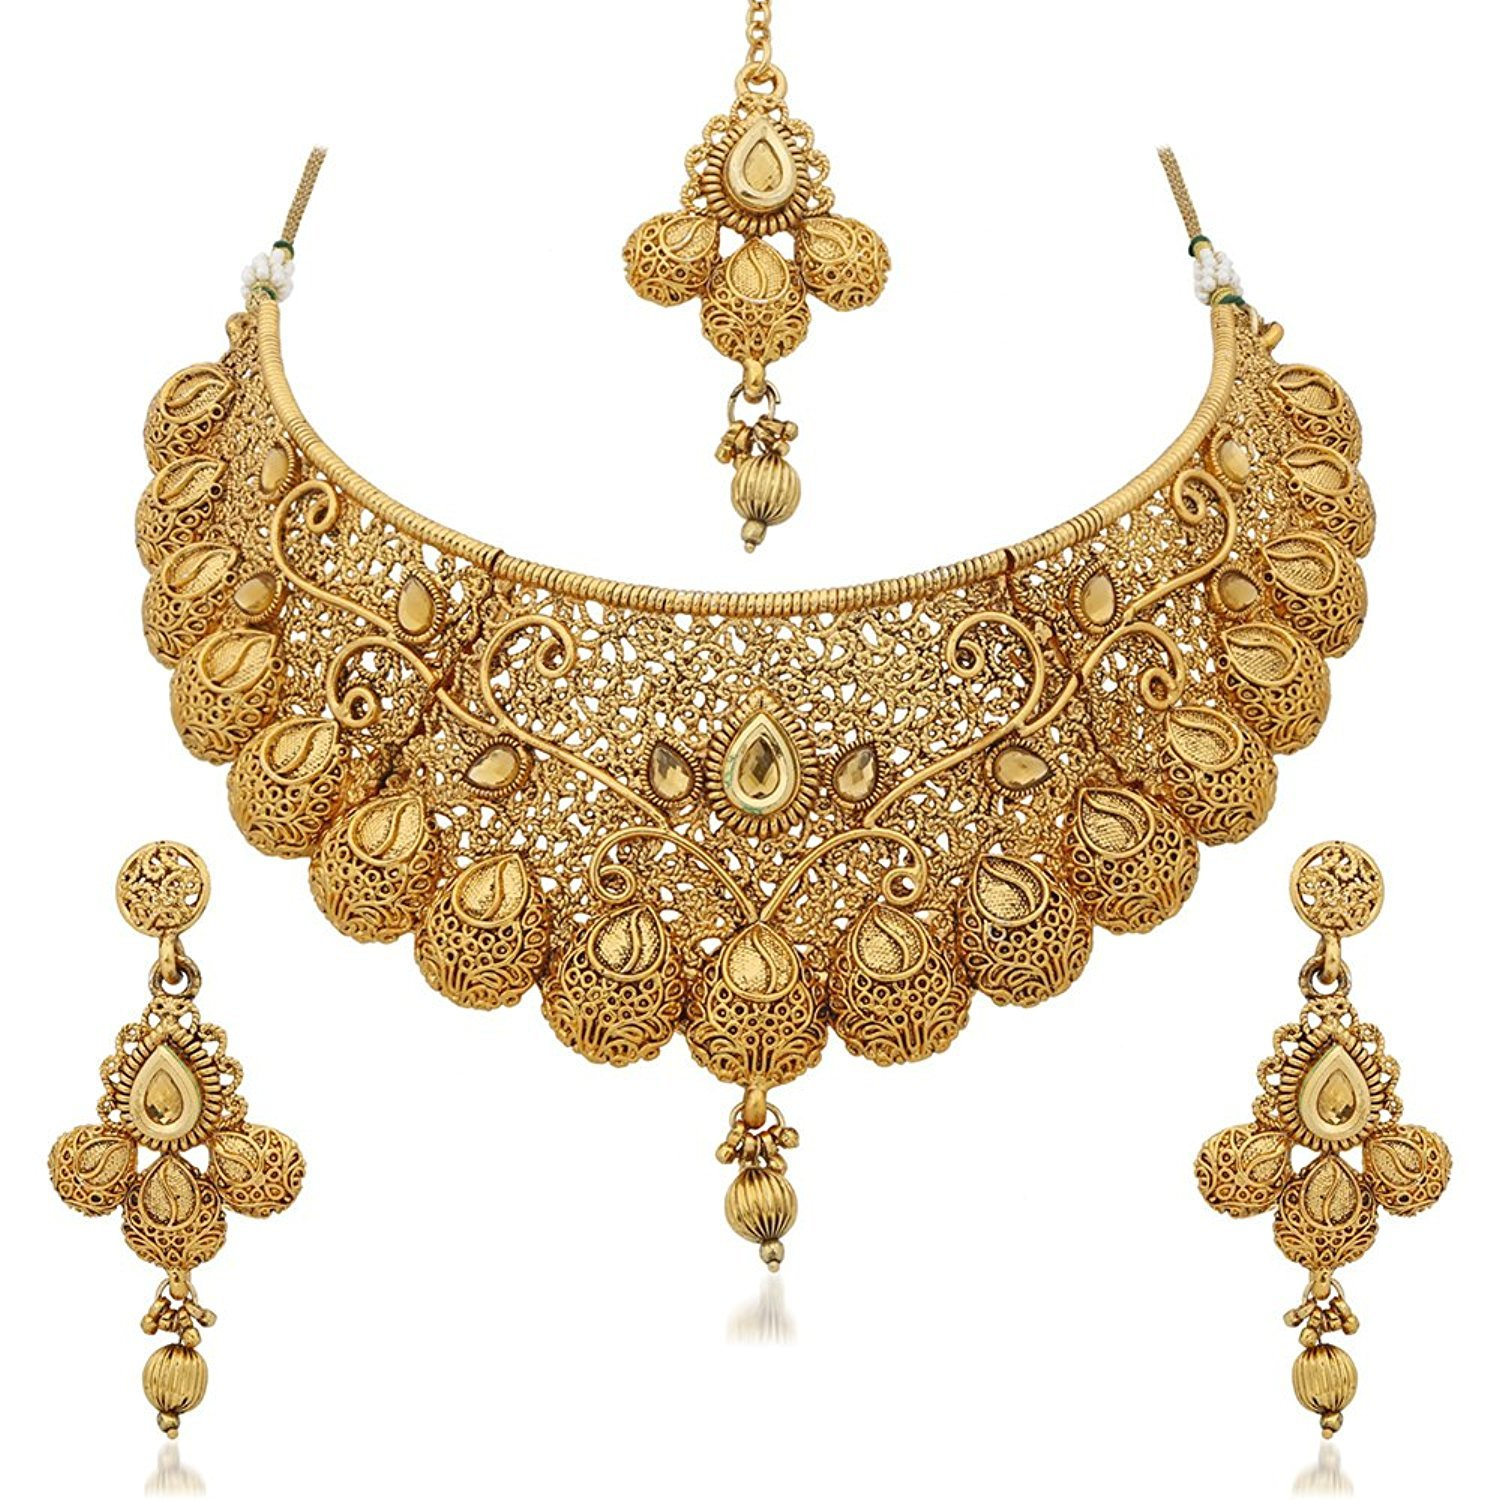 Buy Necklace Sets Online from Designers across India. Worldwide delivery, beautiful Pearl necklace designs hassle free returns, Free Shipping. Call + for any queries.